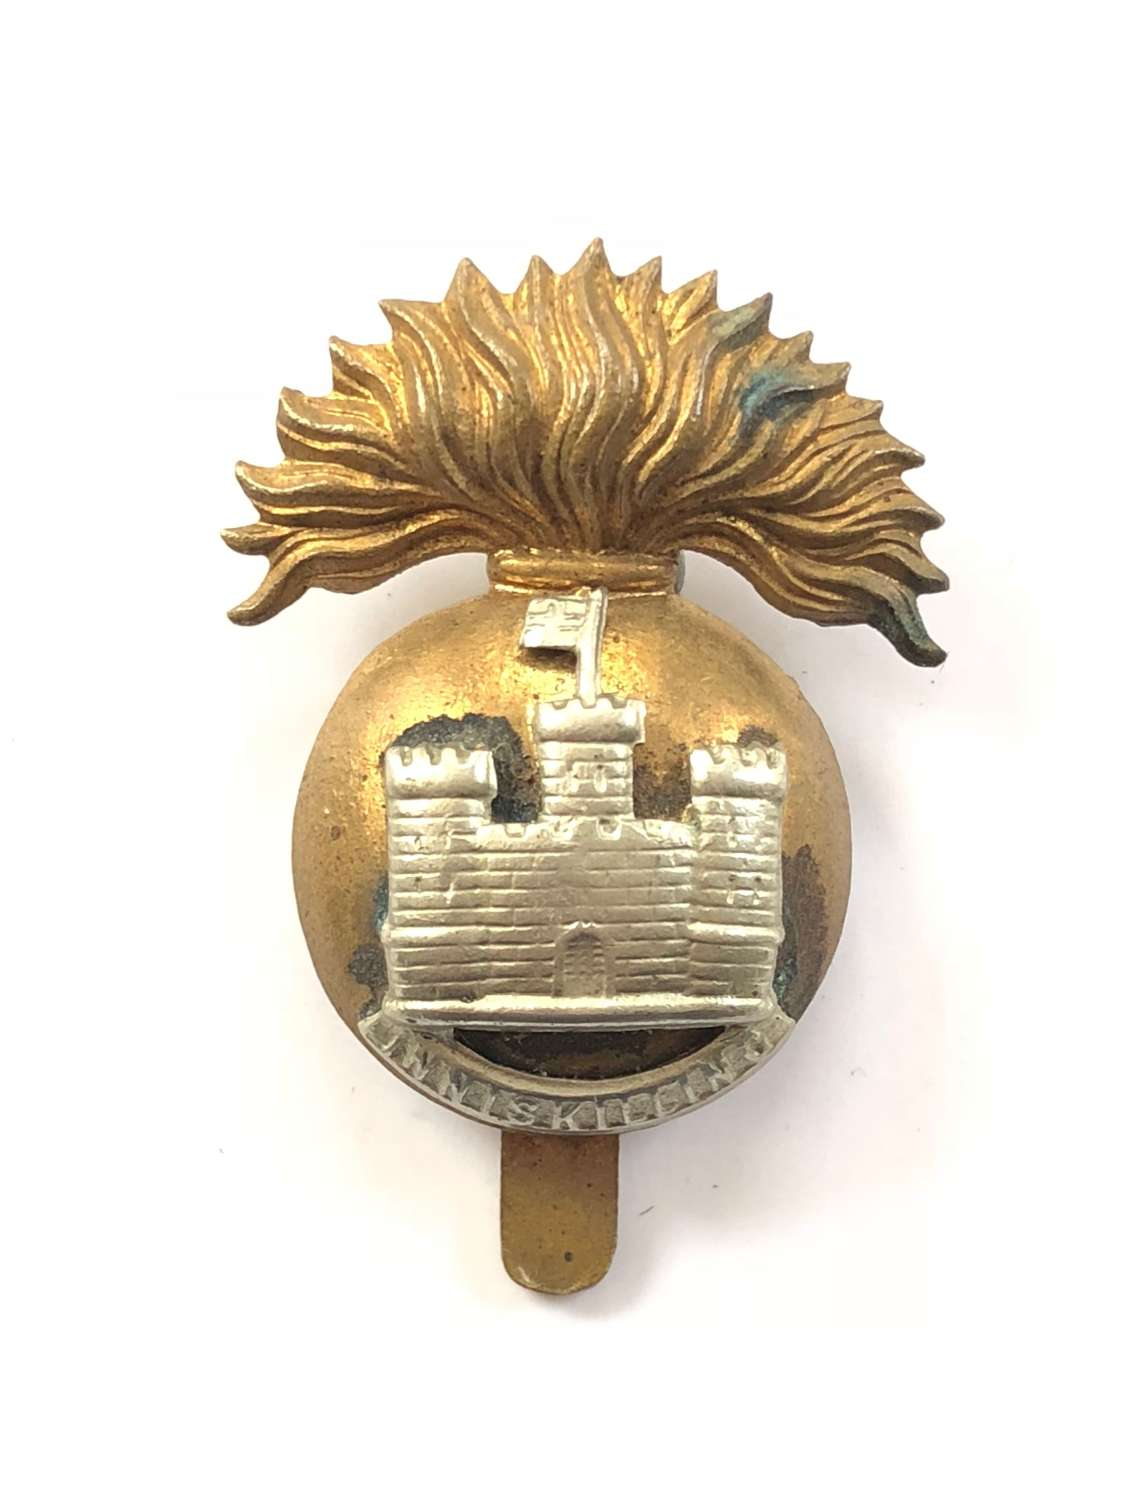 WW1 Period Inniskilling Fusiliers Cap Badge by Tiptaft Birmingham.